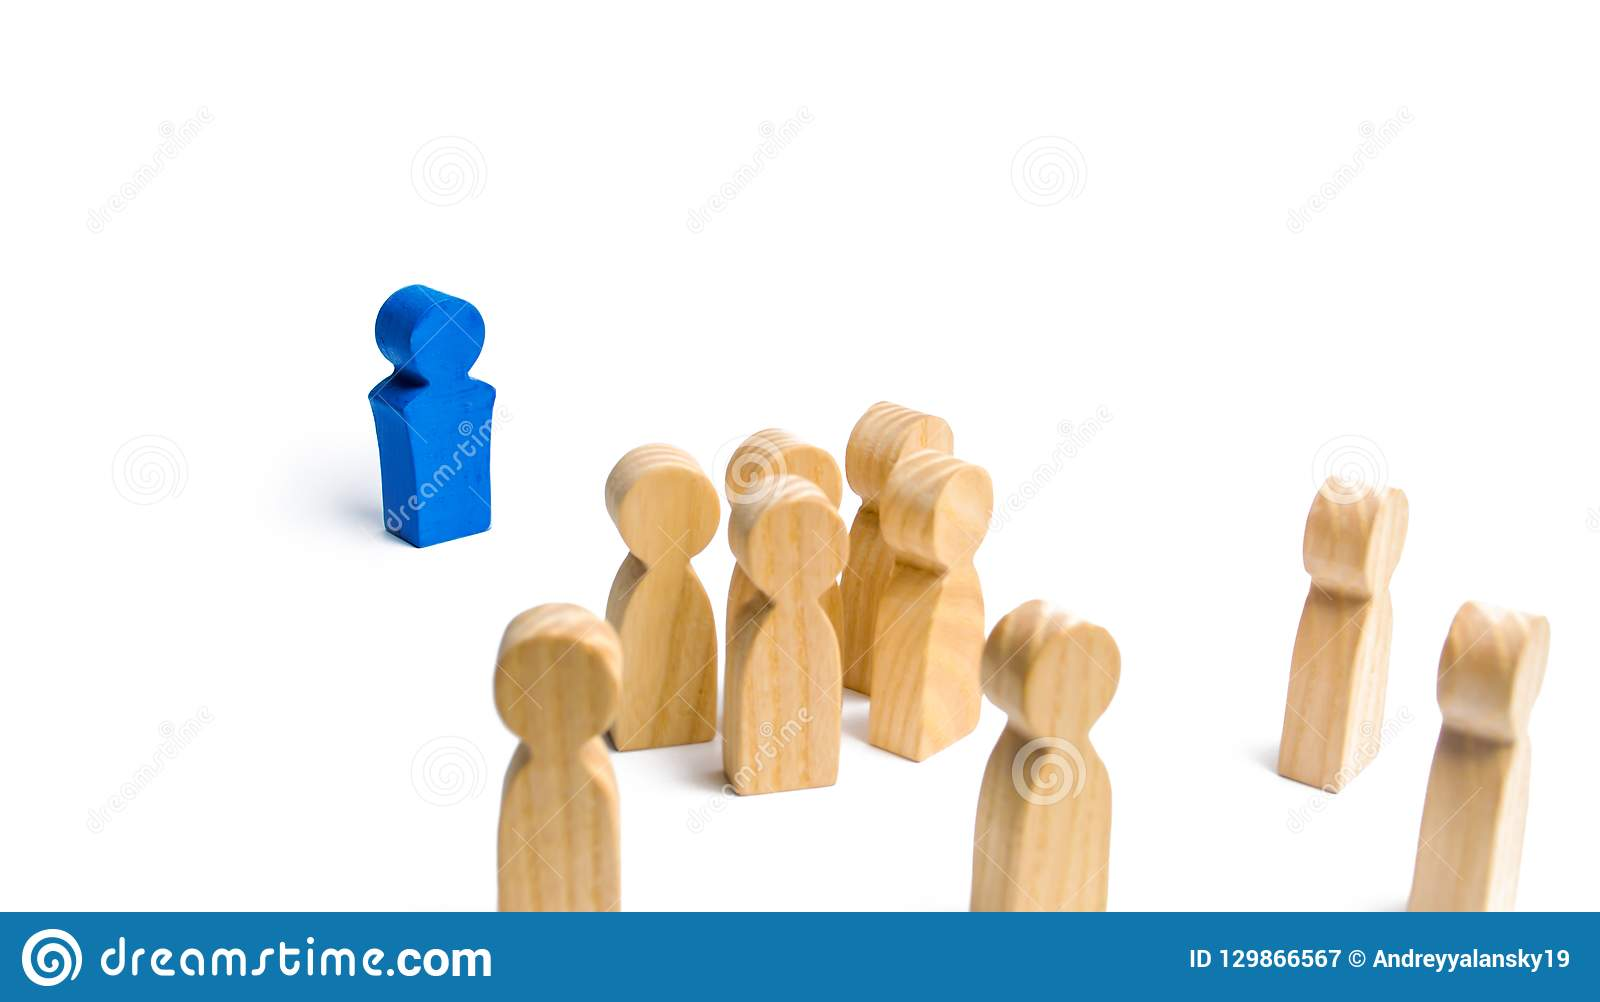 The leader speaks a speech addressing a crowd of people. Business concept of leader and leadership qualities, crowd management